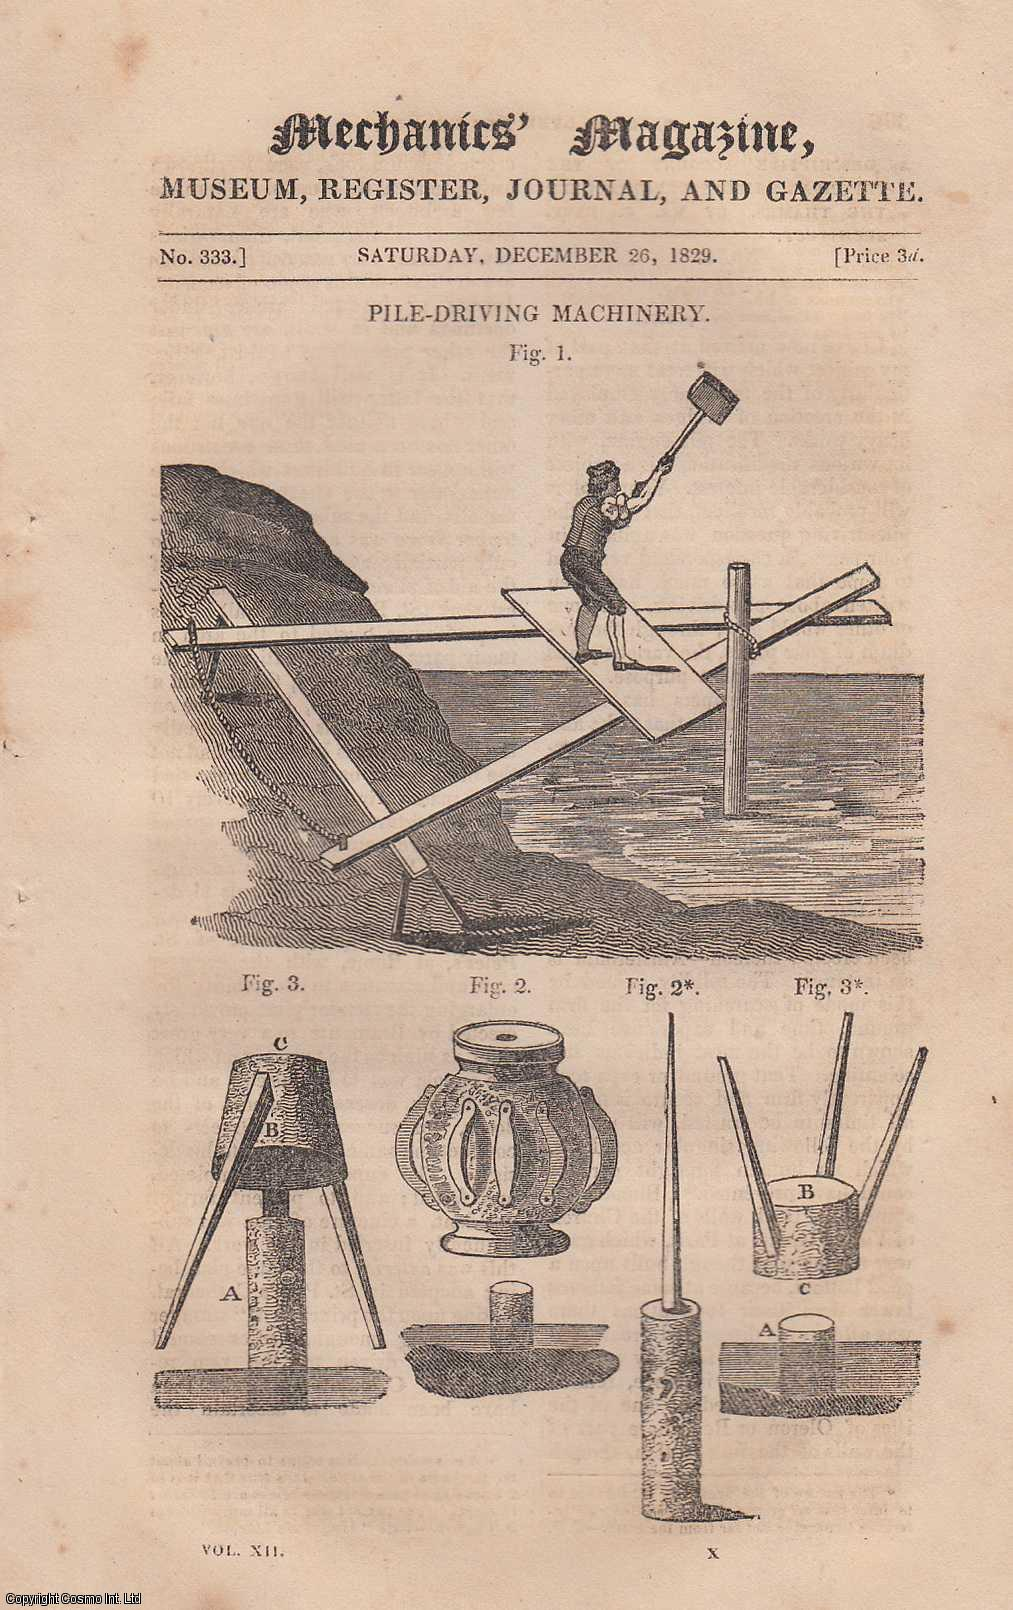 --- - Pile Driving Machinery; Method of Finding The Radius of Curvature of a Cycloid; Hull & Boston Clocks, etc. Mechanics Magazine, Museum, Register, Journal and Gazette. Issue No. 333. A complete rare weekly issue of the Mechanics' Magazine, 1829.